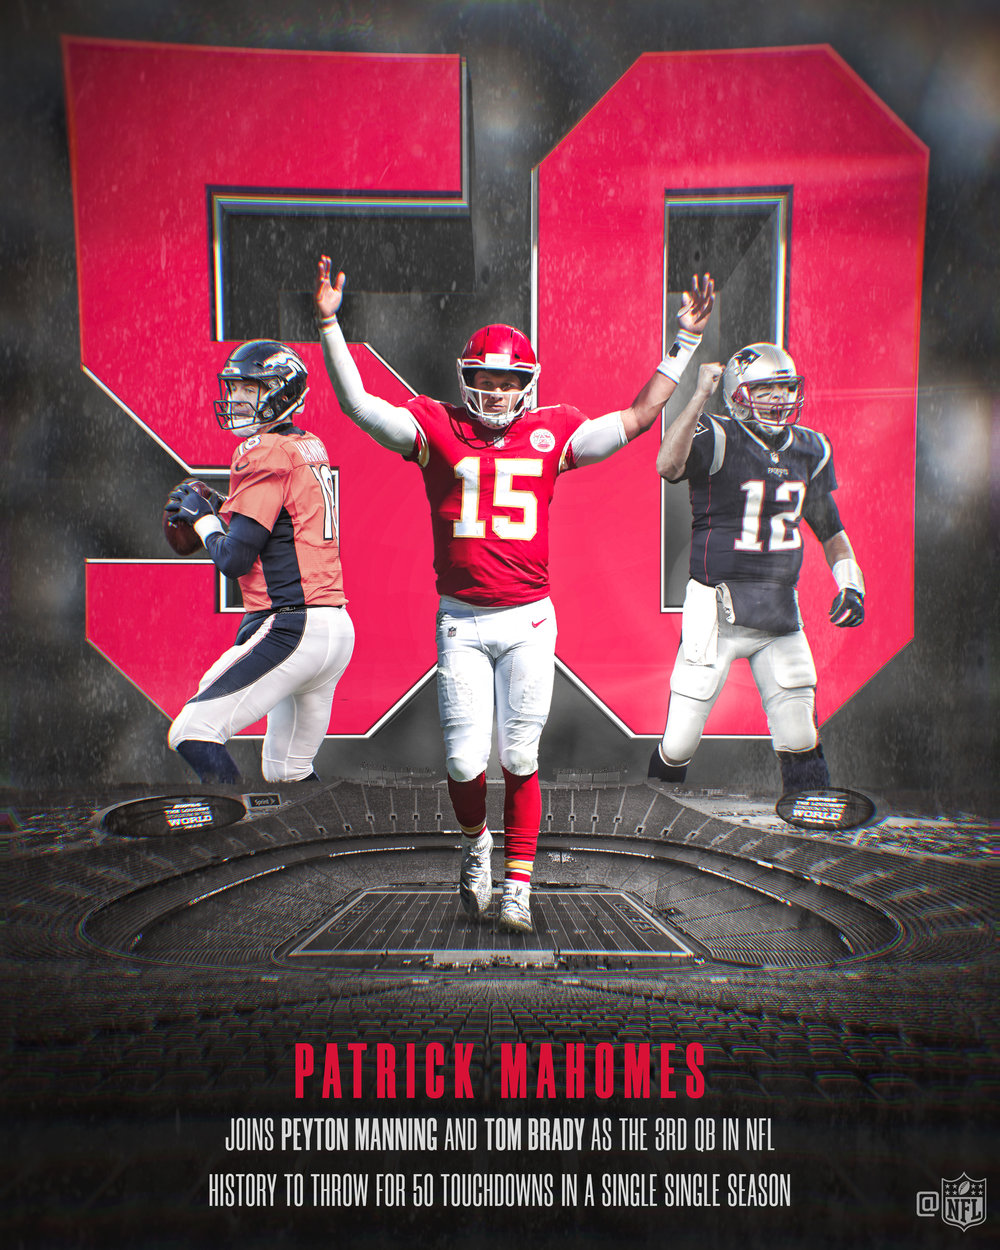 Mahomes 50 with Brady and Manning.jpg